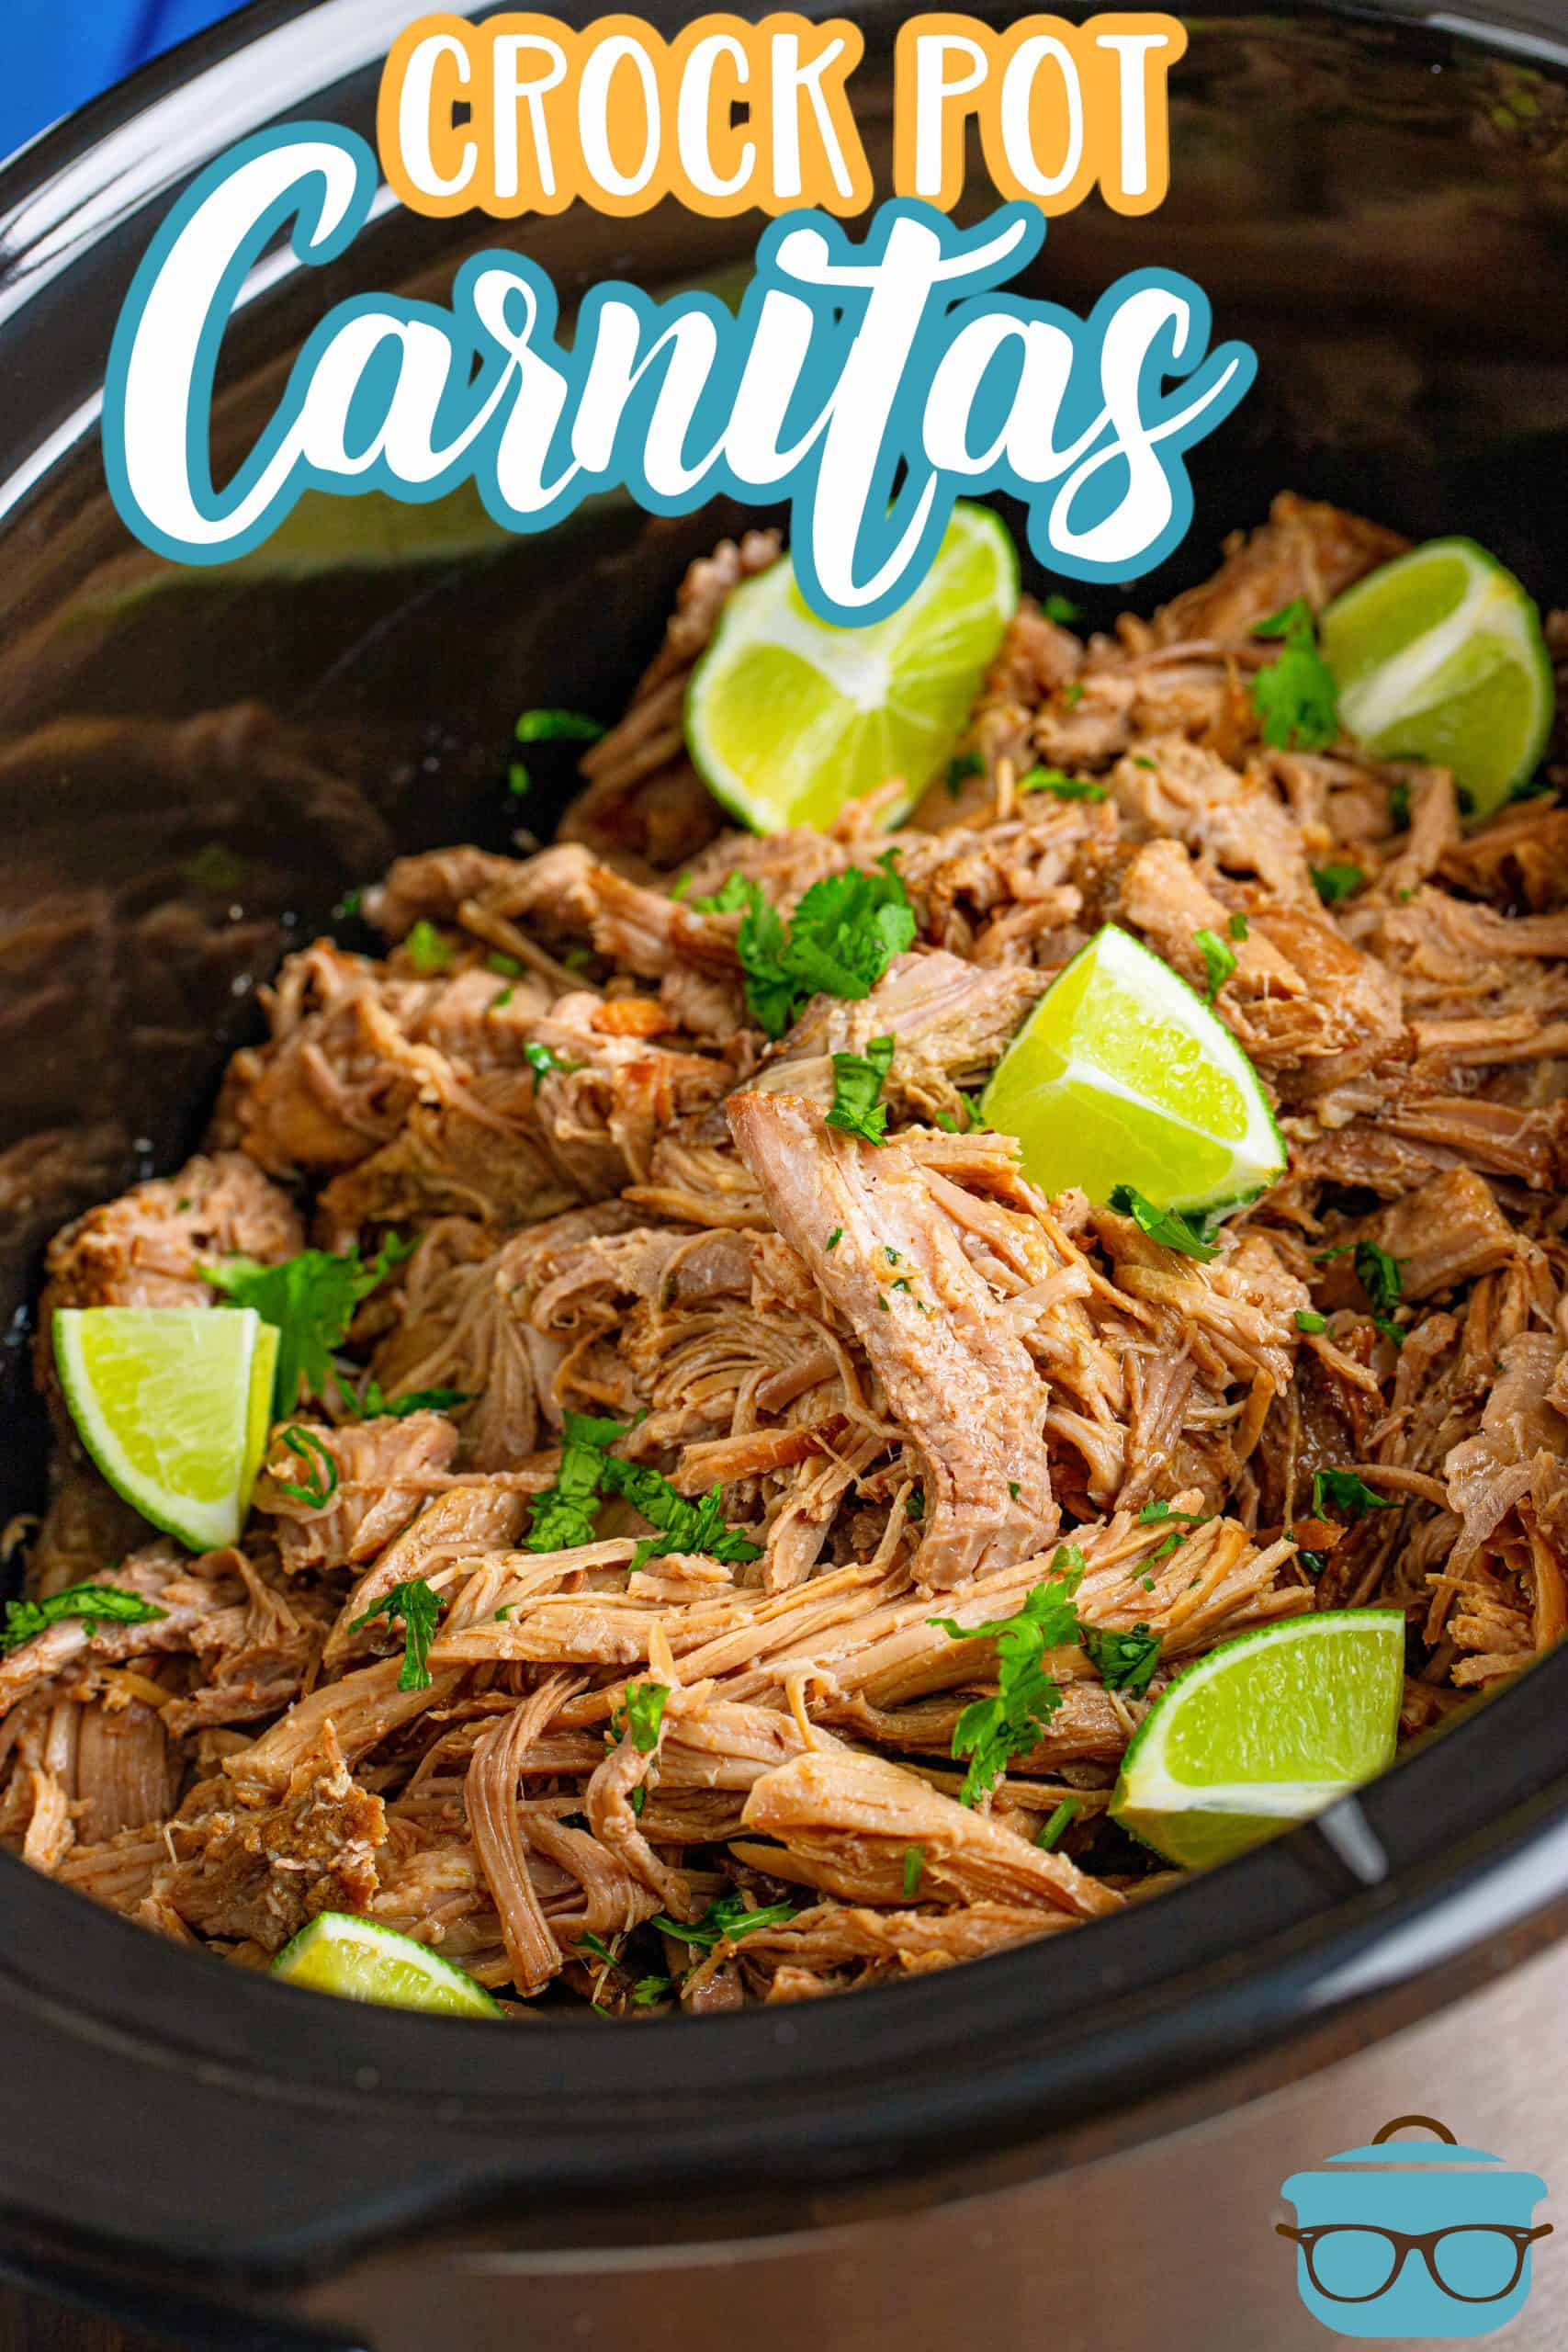 These Crock Pot Pork Carnitas only require a handful of ingredients and are full of flavor. Perfectly seasoned pork and a trick to help the meat stay tender with crispy edges!